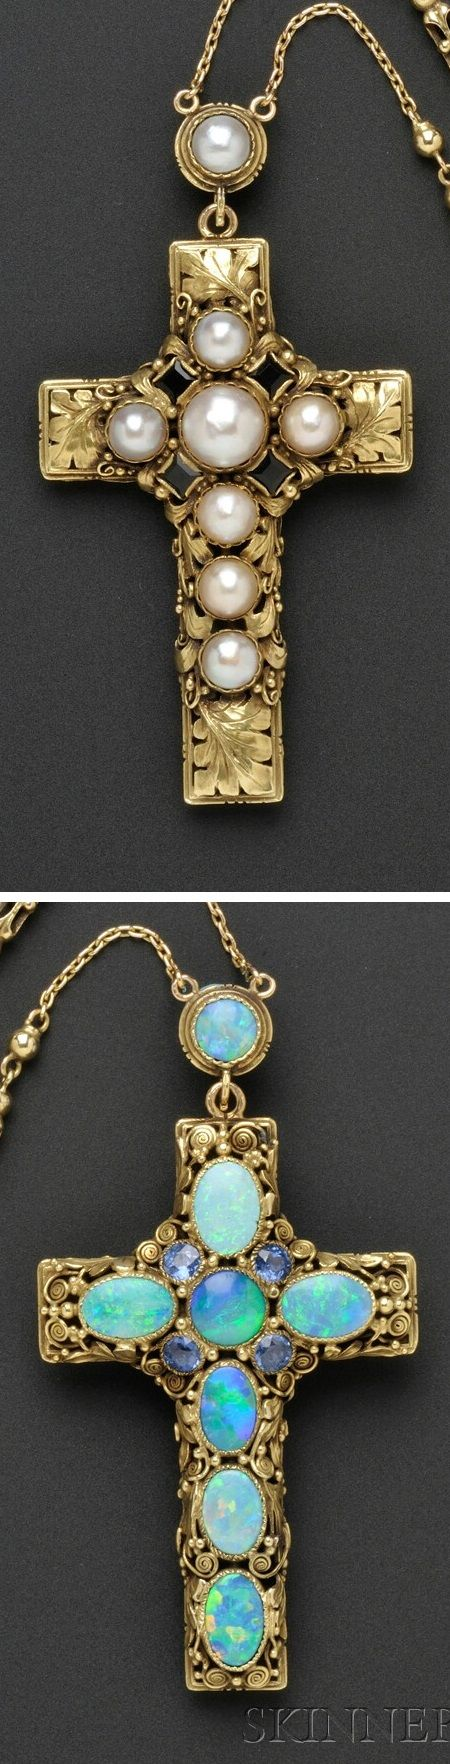 """Edward Oakes - An Arts and Crafts gold, opal, and pearl cross and chain, American, circa 1930. Unmarked. Accompanied by a letter of authentication from Susan Oakes Peabody, in which she states, """"I have had the pleasure of viewing many of Grandfather's crosses and own one. This is by far the most beautiful I have seen."""" #Oakes #ArtsAndCrafts"""